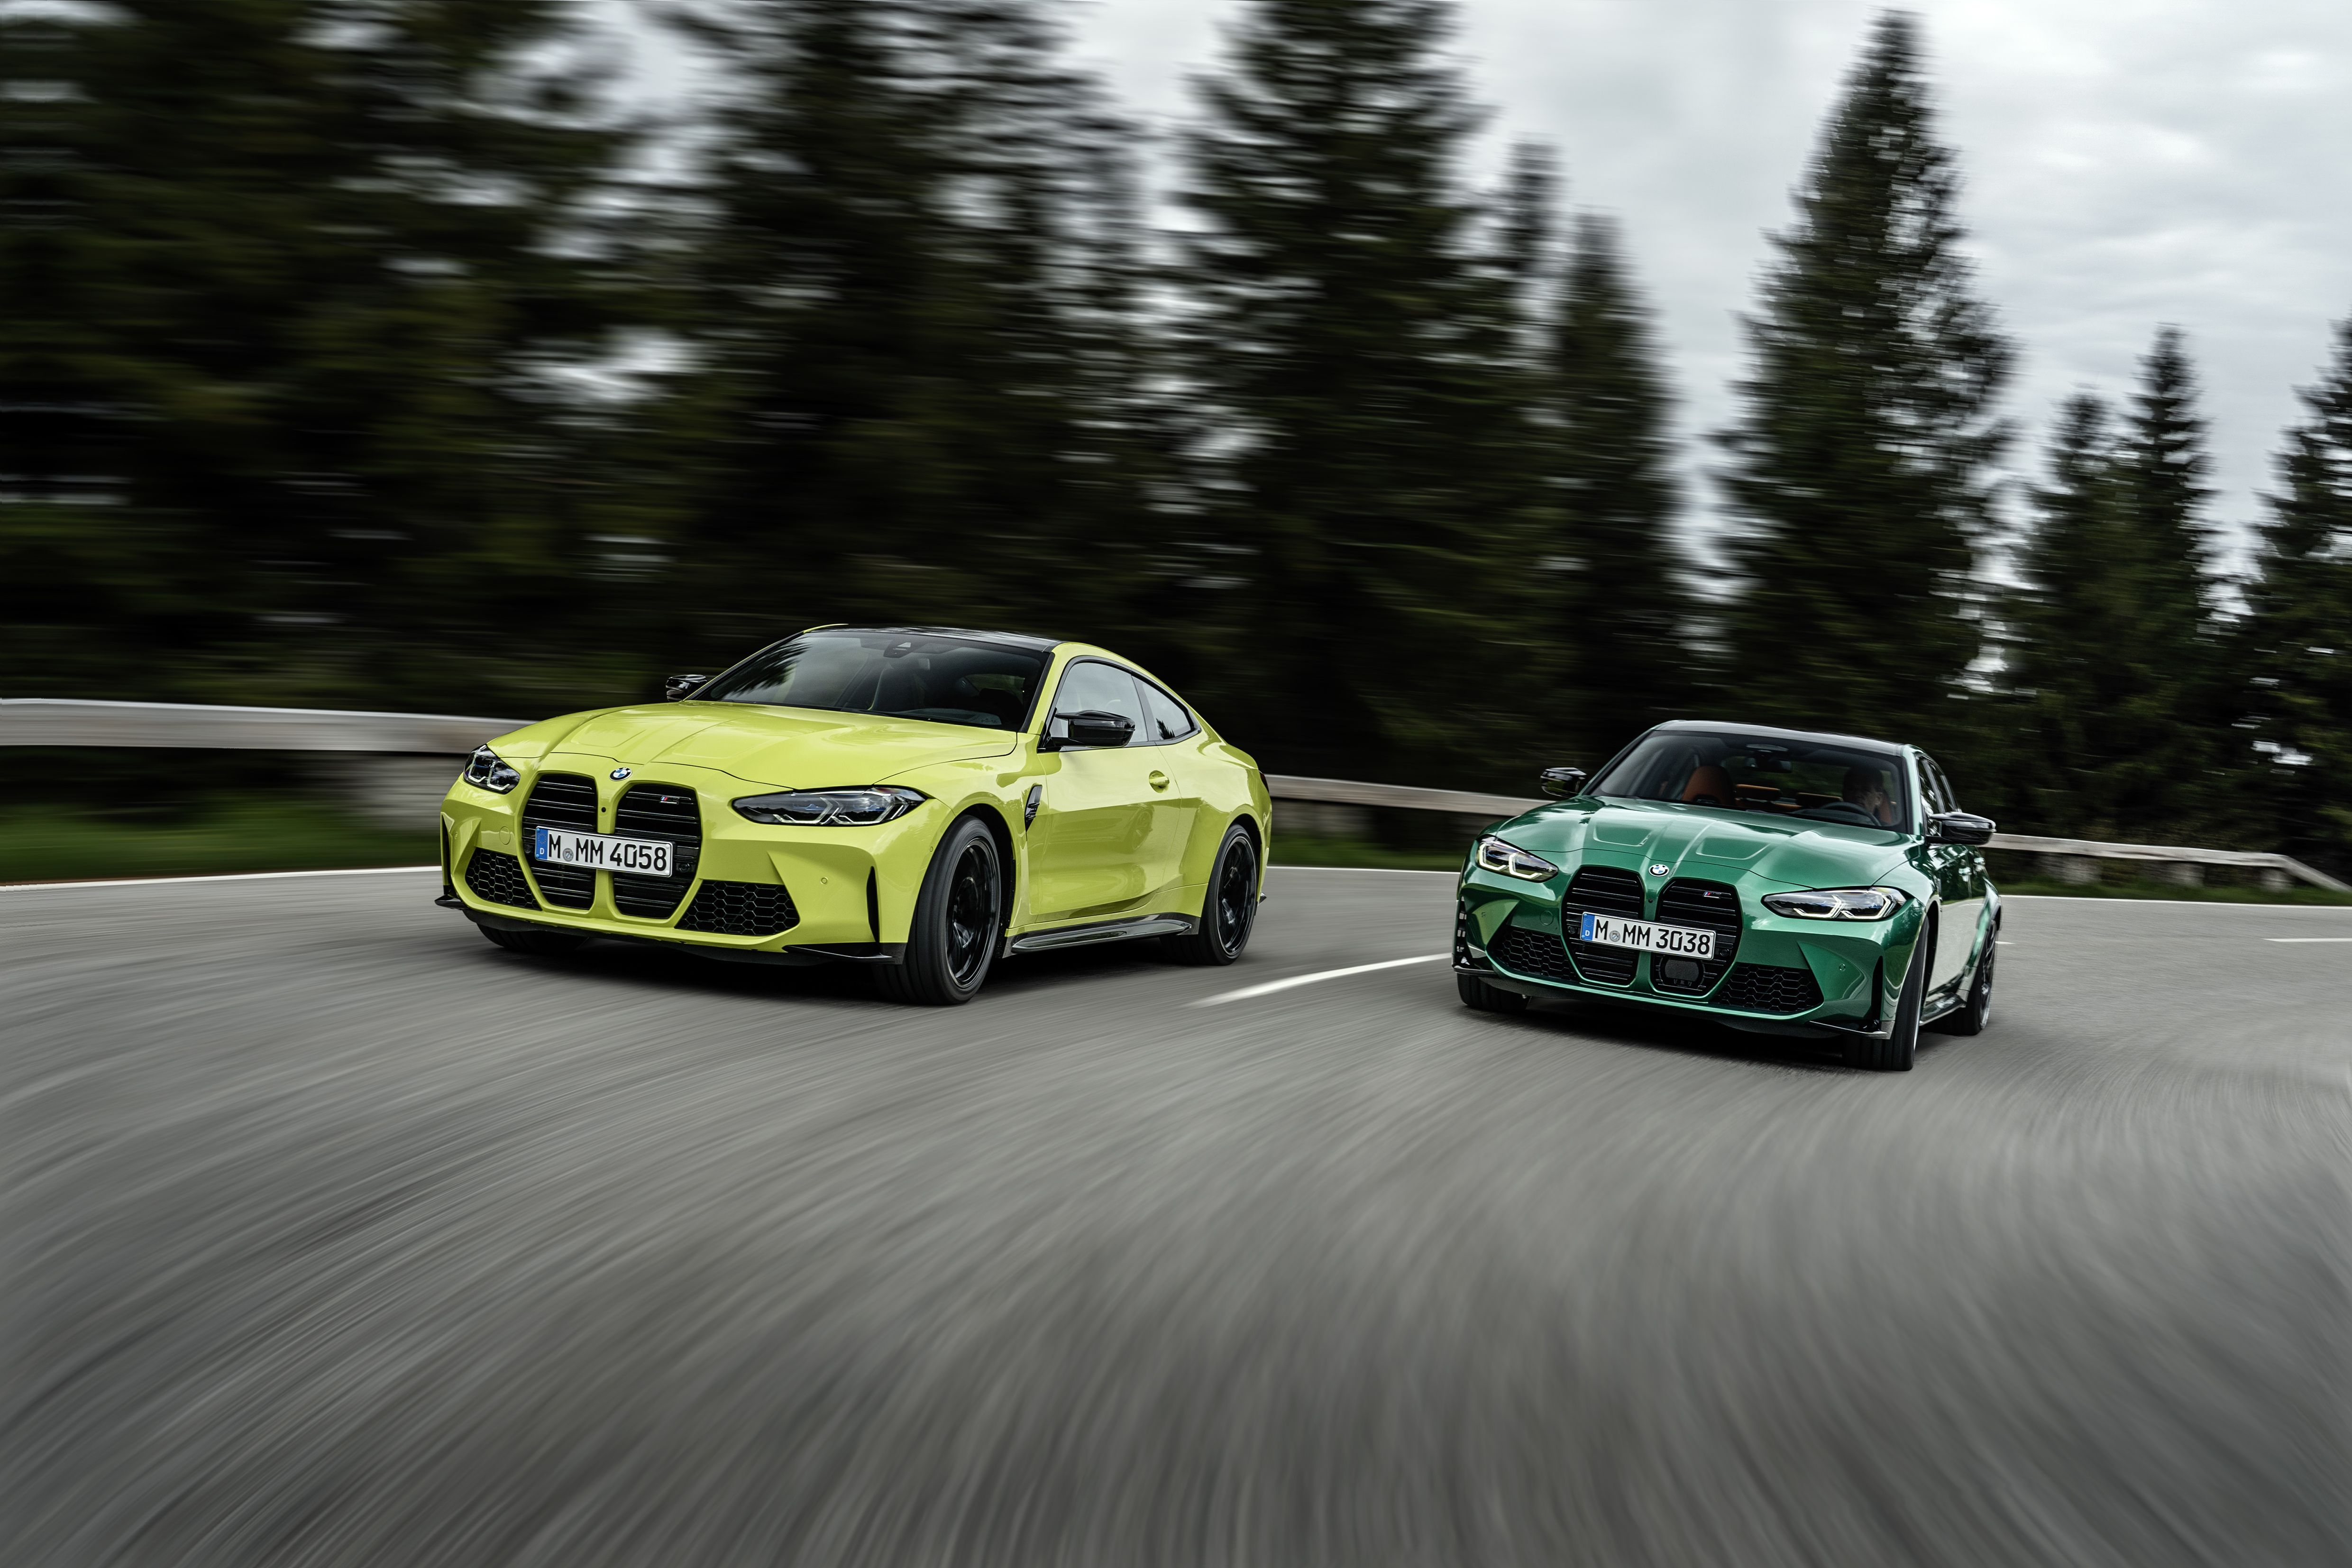 Bmw Debuts Screaming New M3 And M4s World Will Never Be The Same